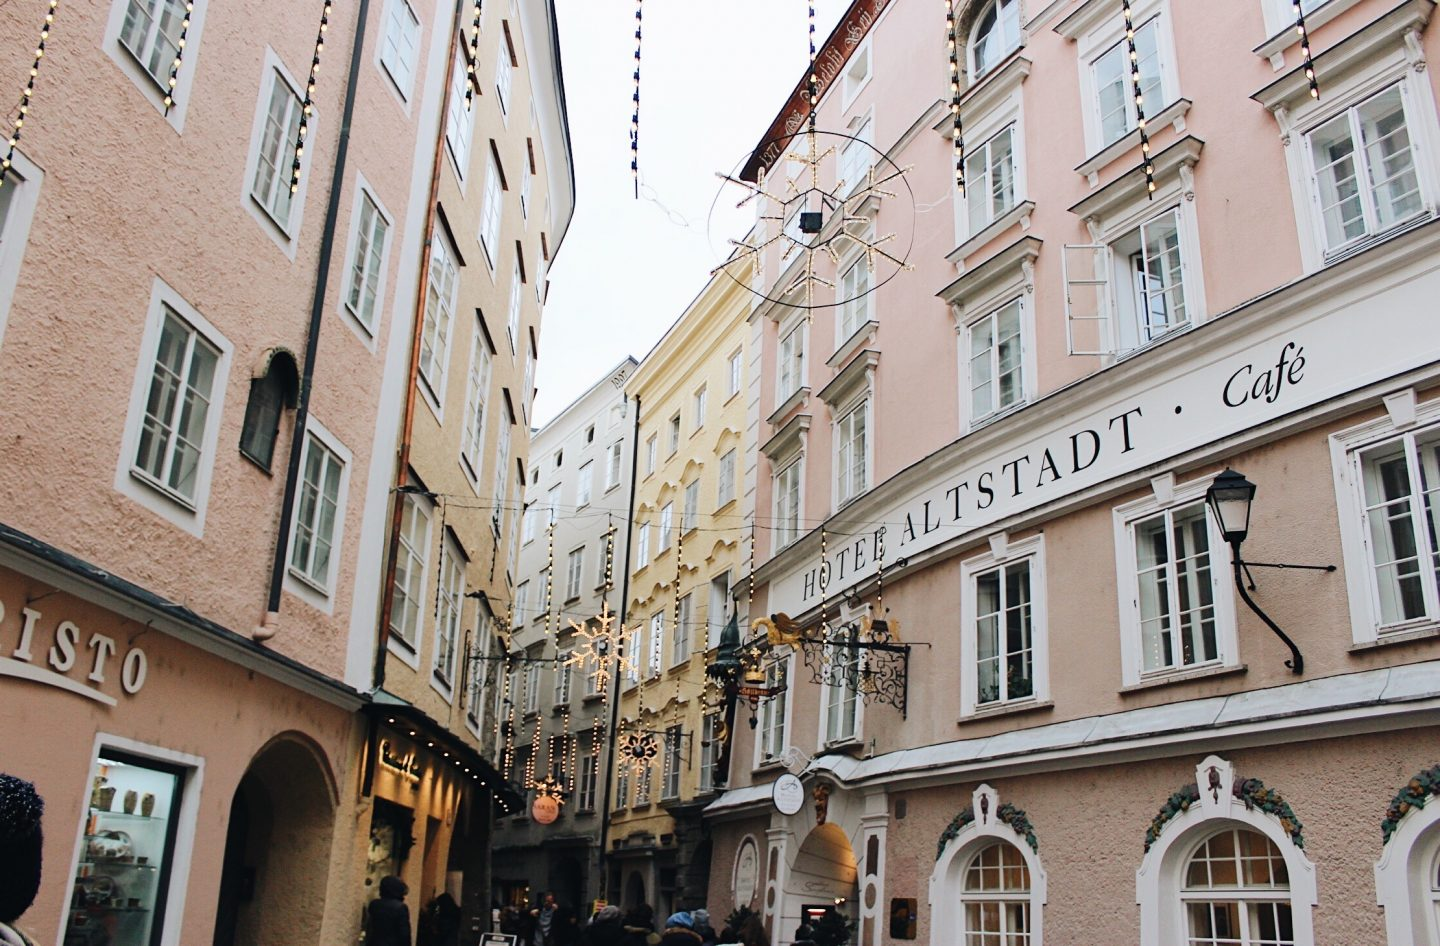 The decorated streets of Salzburg, Austria